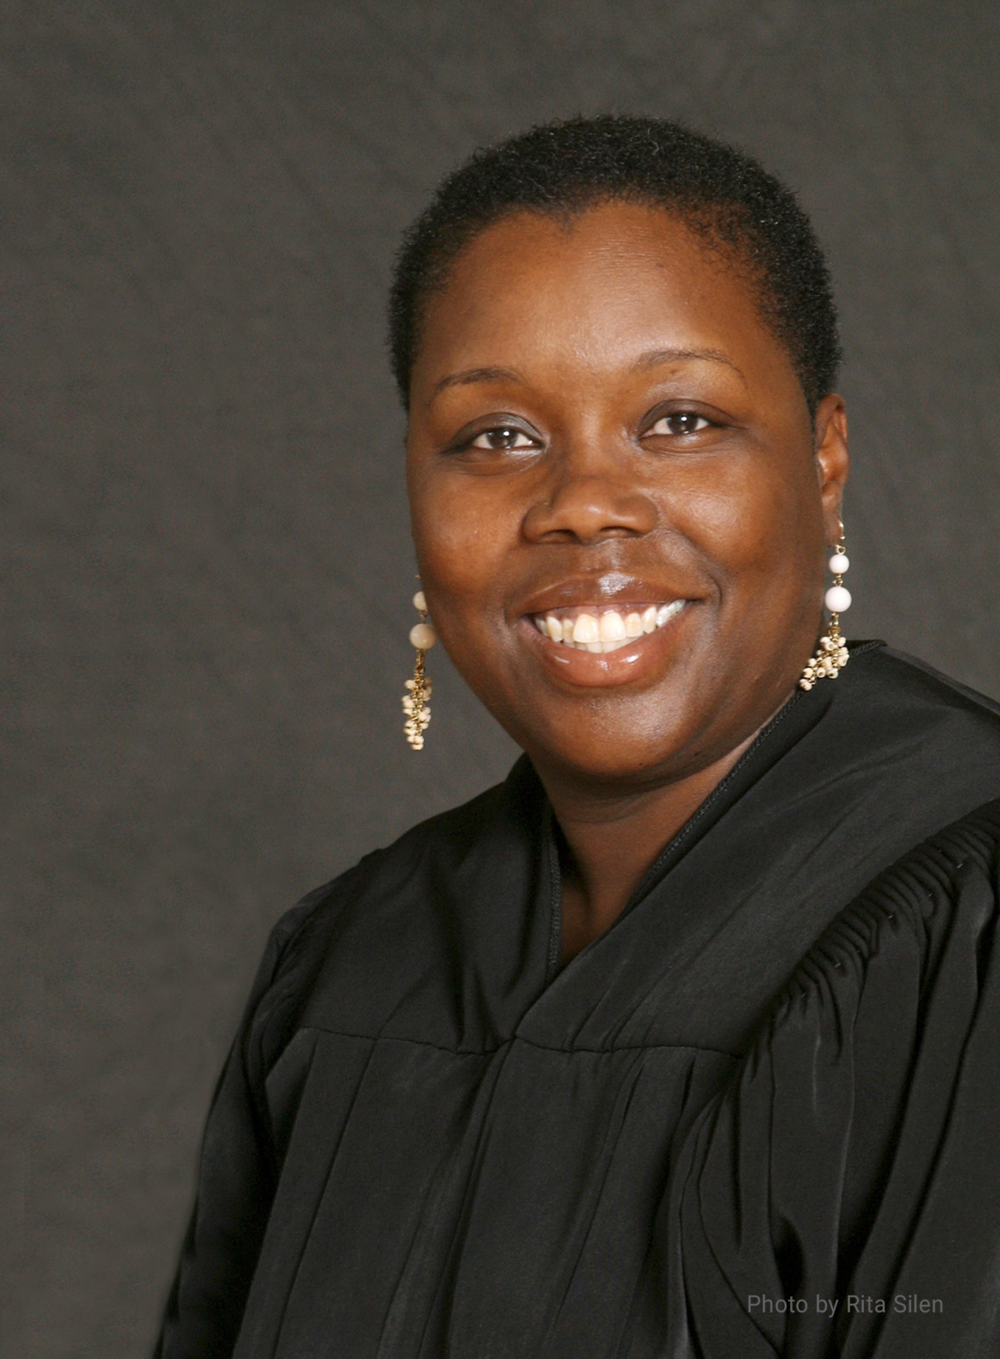 Appointed to the Oregon Supreme Court - Justice Adrienne Nelson was appointed to the Oregon Supreme Court on January 2, 2018, making her the first African American to sit on the state's highest court and any appellate state court.